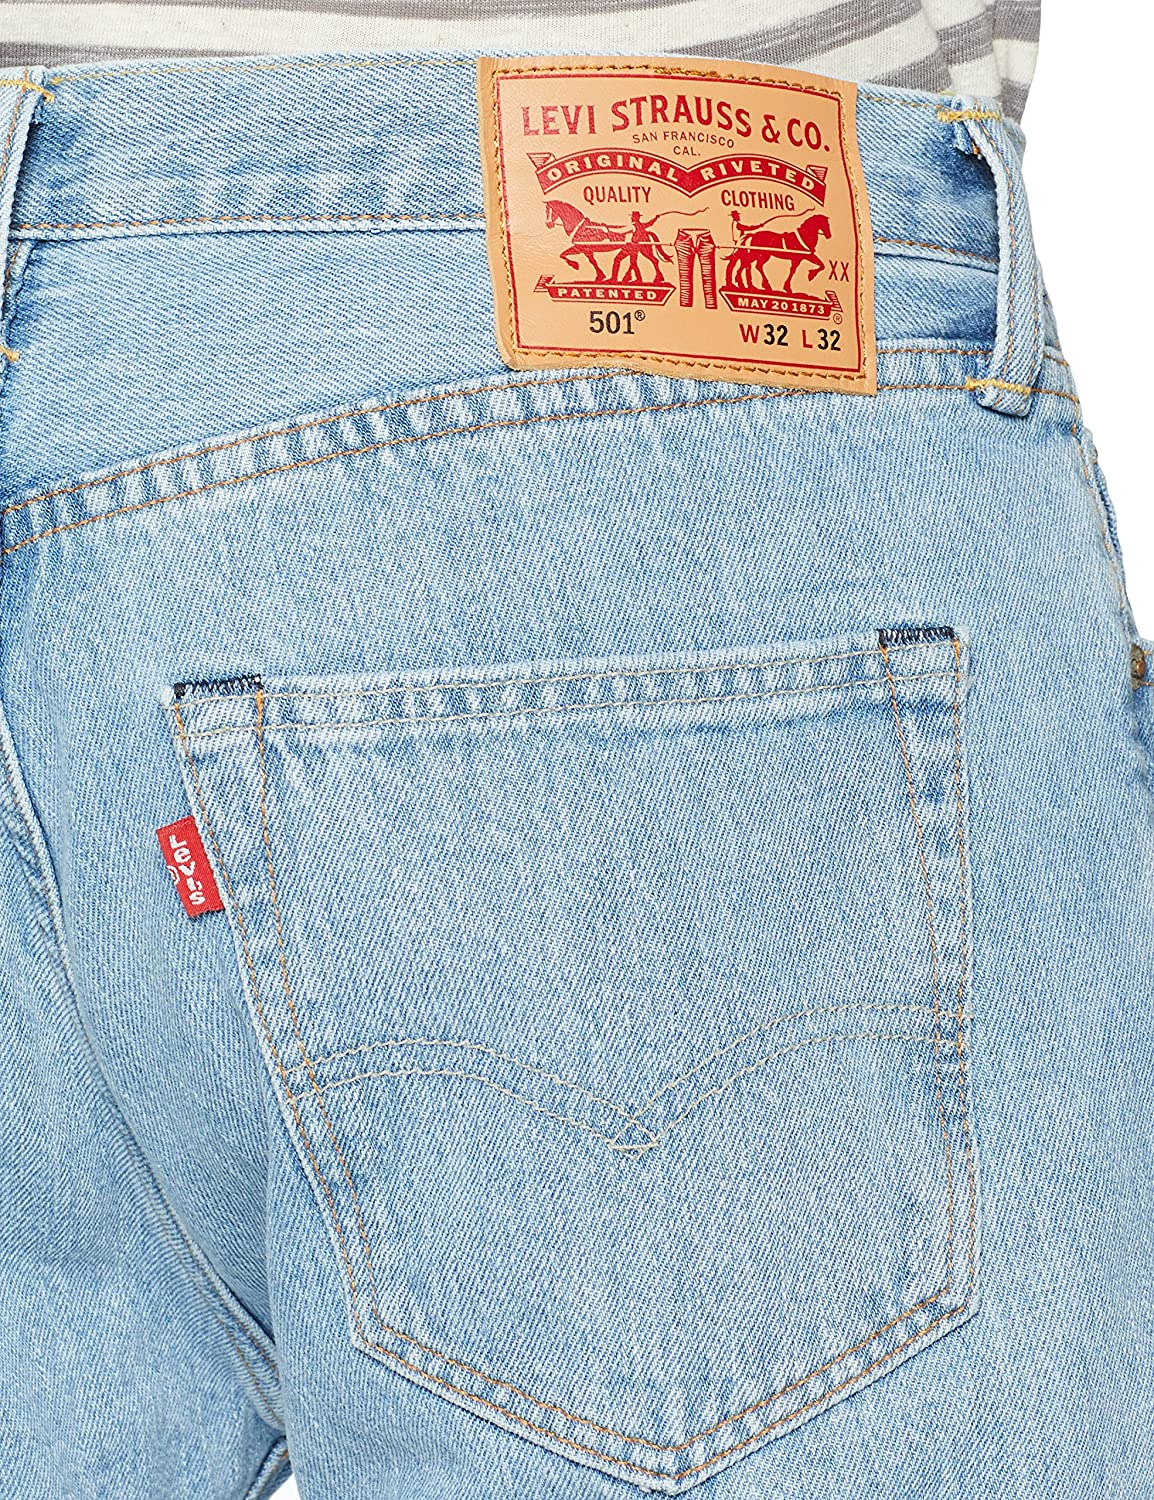 Seguro micrófono Relacionado  Levi's Men's 501 Original Fit Jeans, Blue at Amazon Men's Clothing store